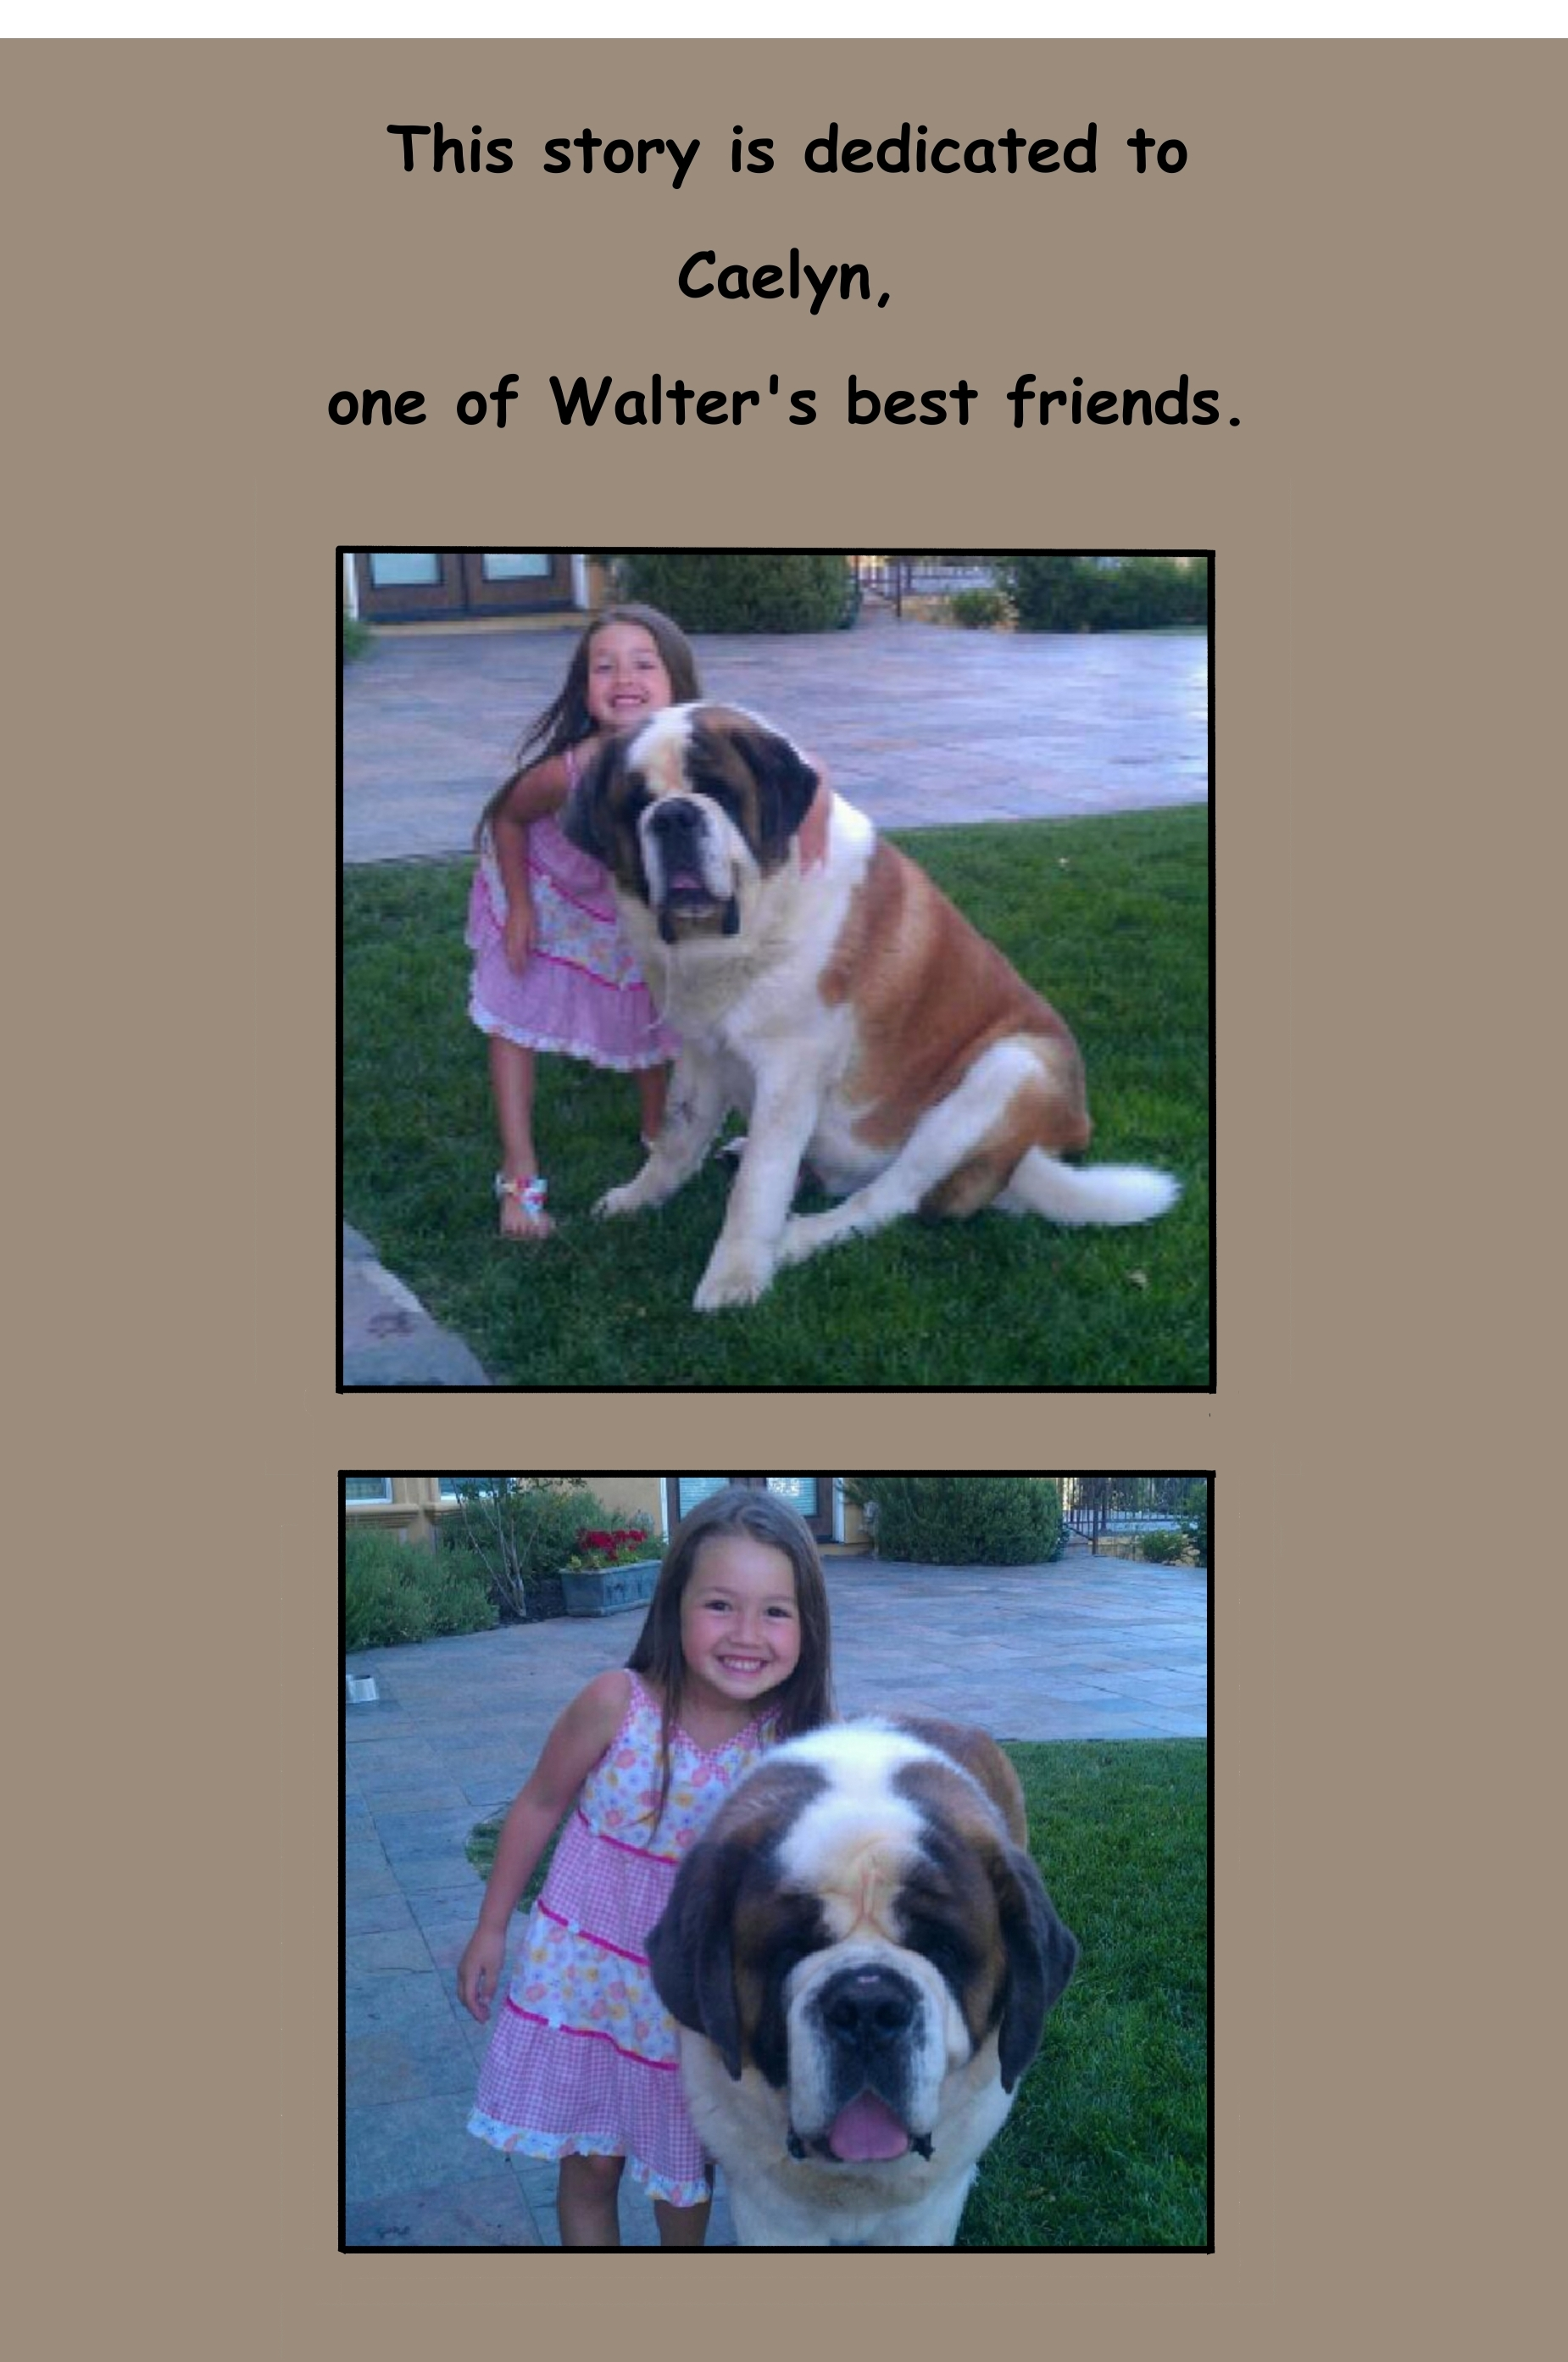 This story is dedicated to Caelyn, one of Walter's best friends.